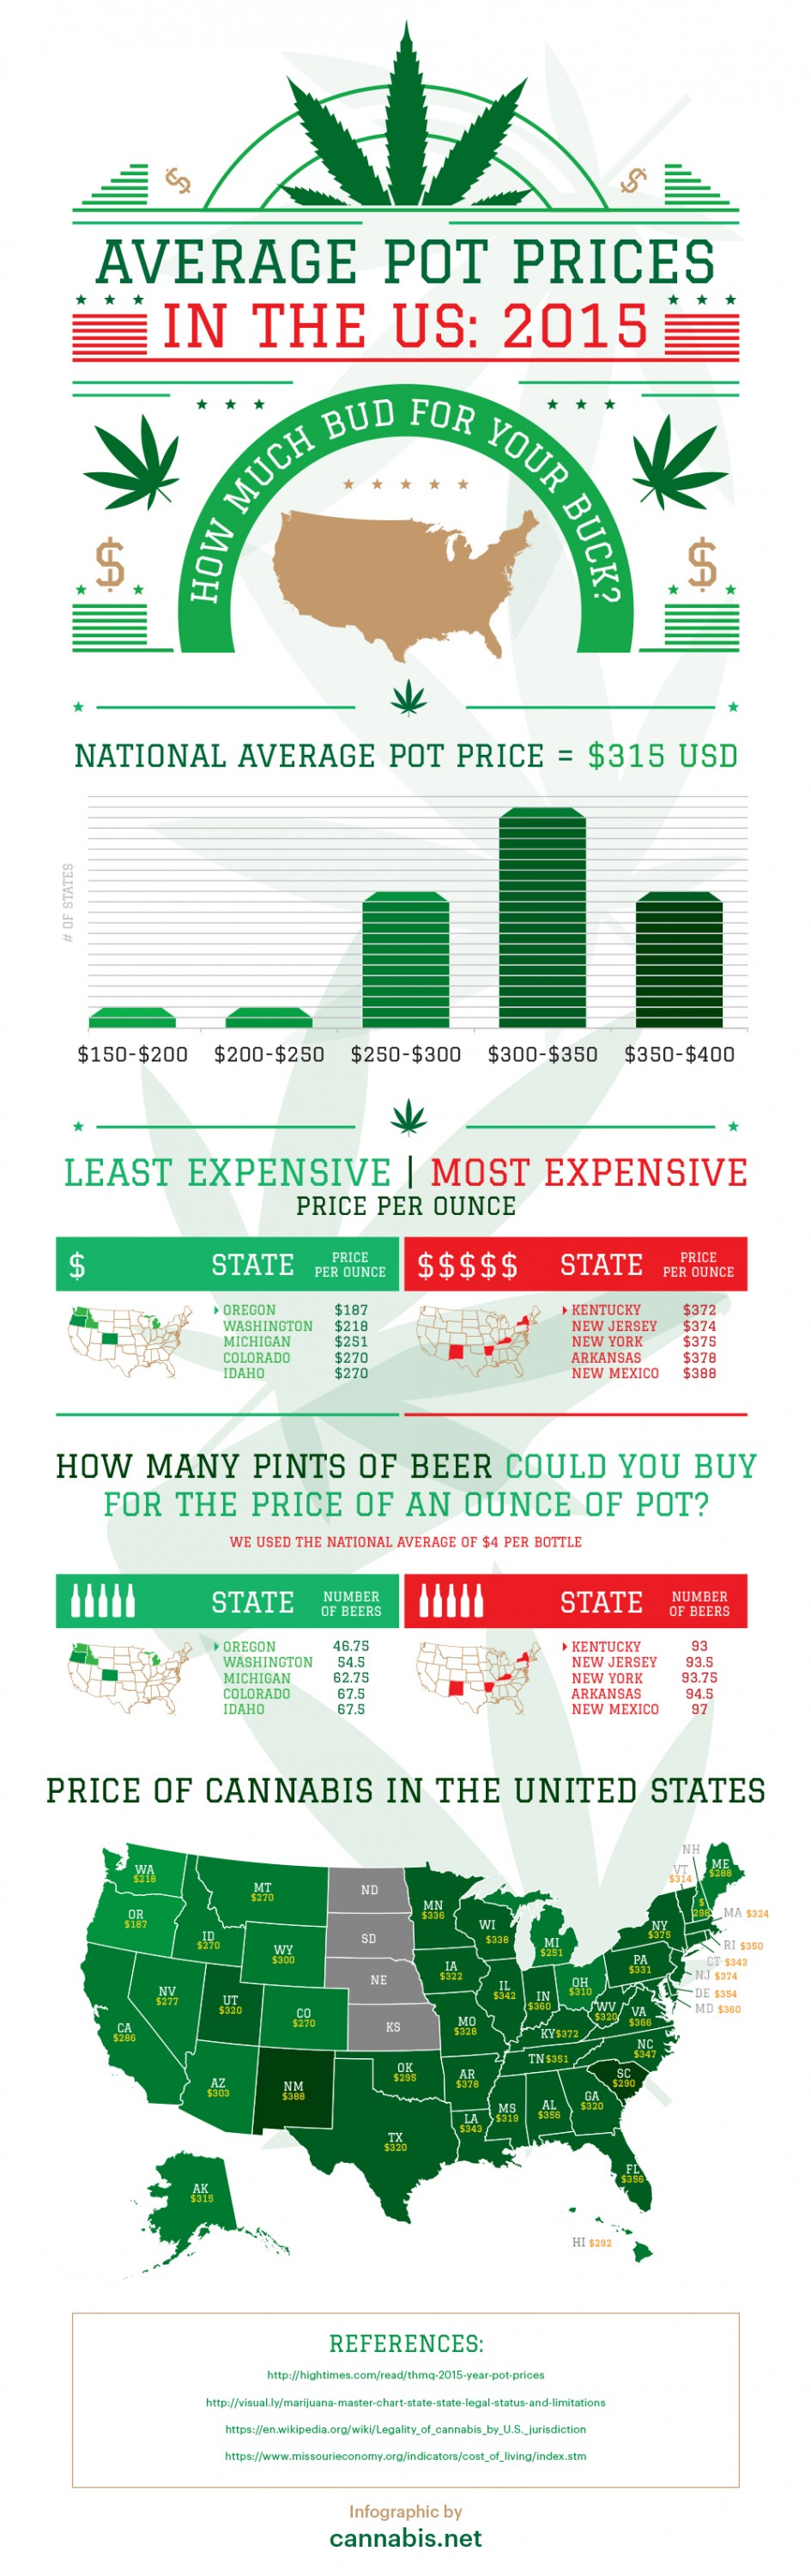 MARIJUANA COSTS